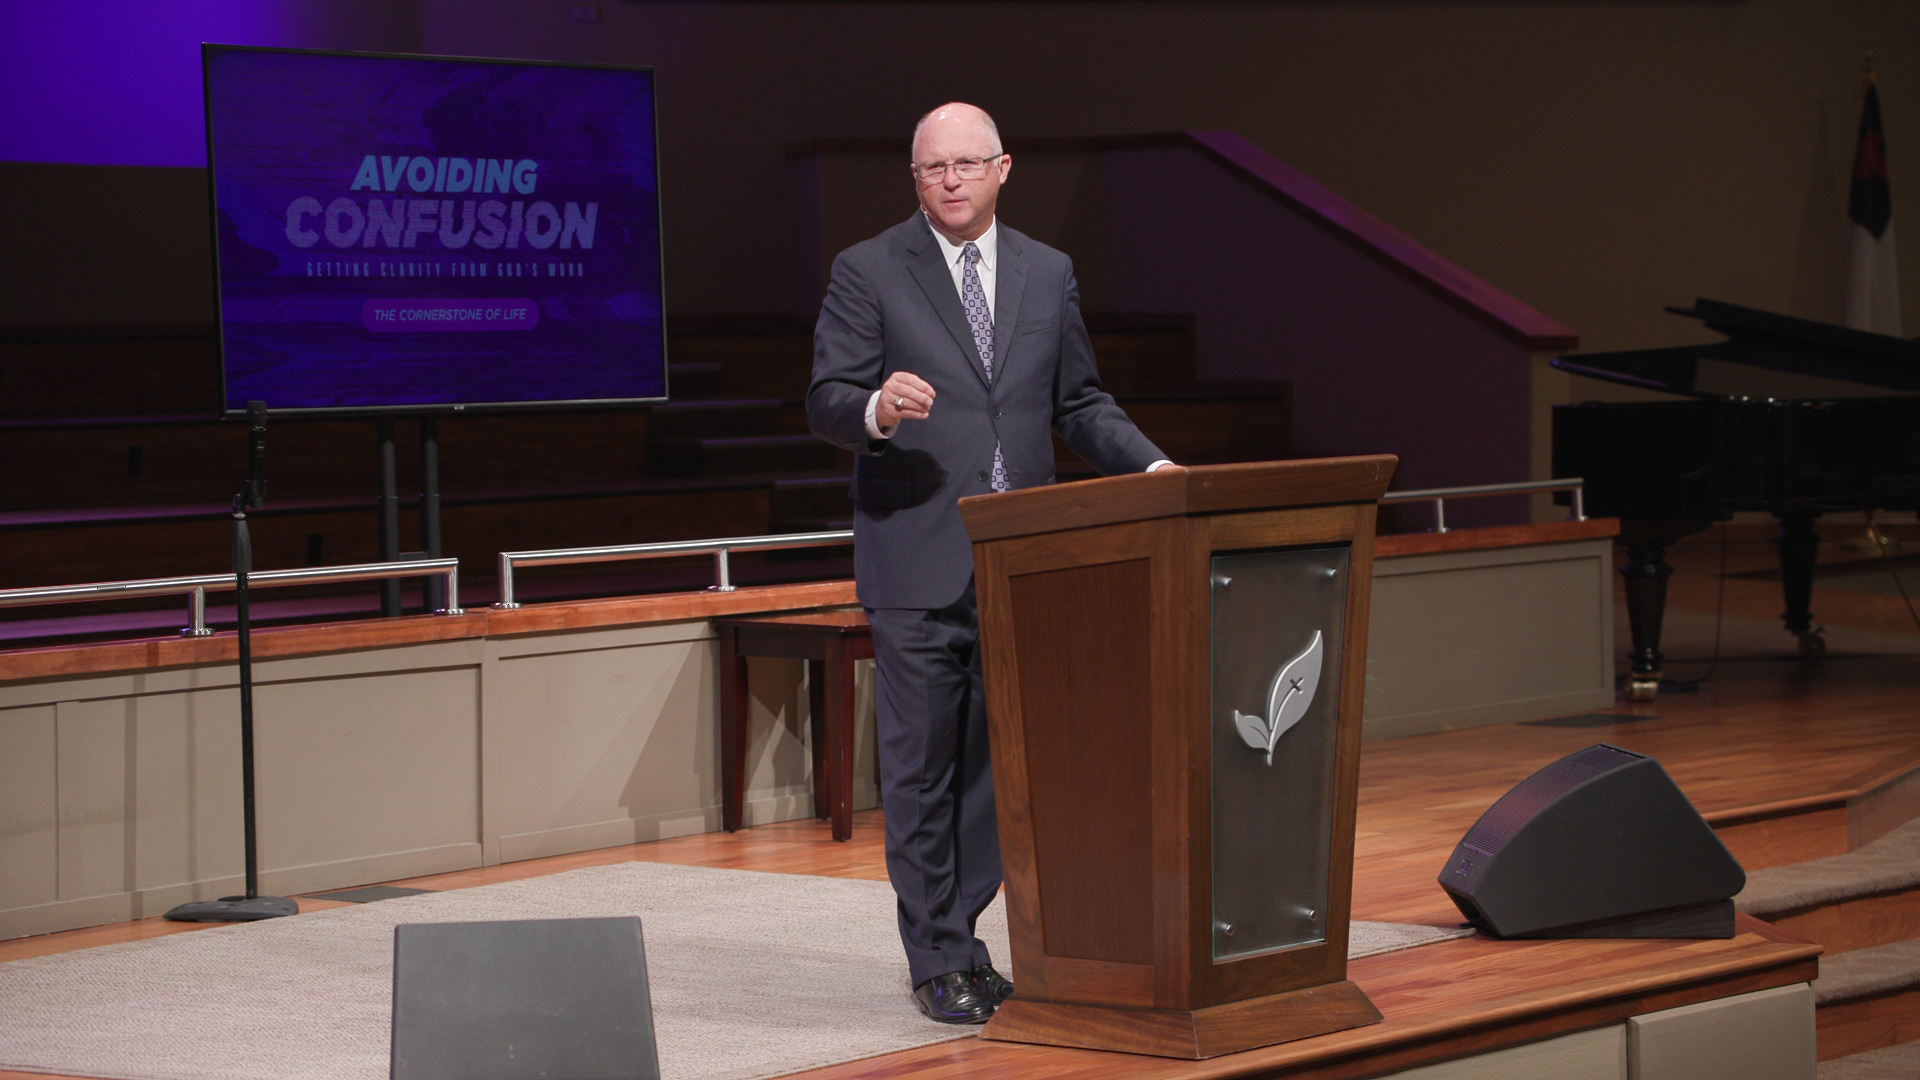 Pastor Paul Chappell: The Cornerstone of Life